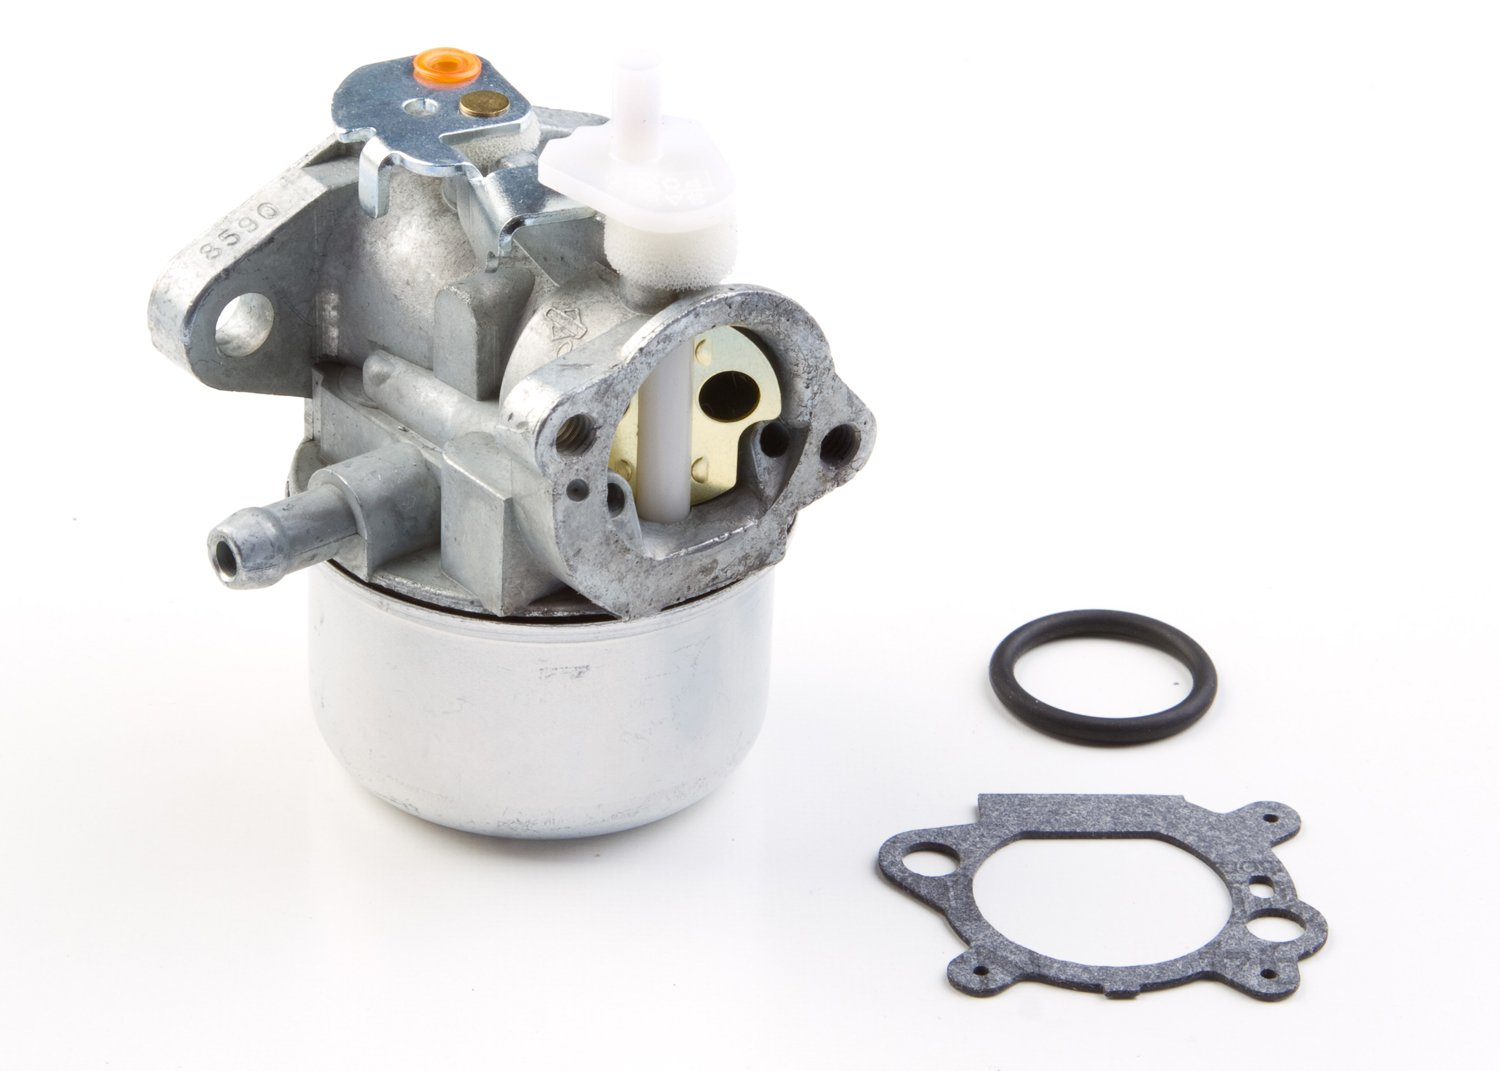 Amazon.com : Briggs & Stratton 499059 Carburetor : Lawn And Garden Tool  Replacement Parts : Garden & Outdoor